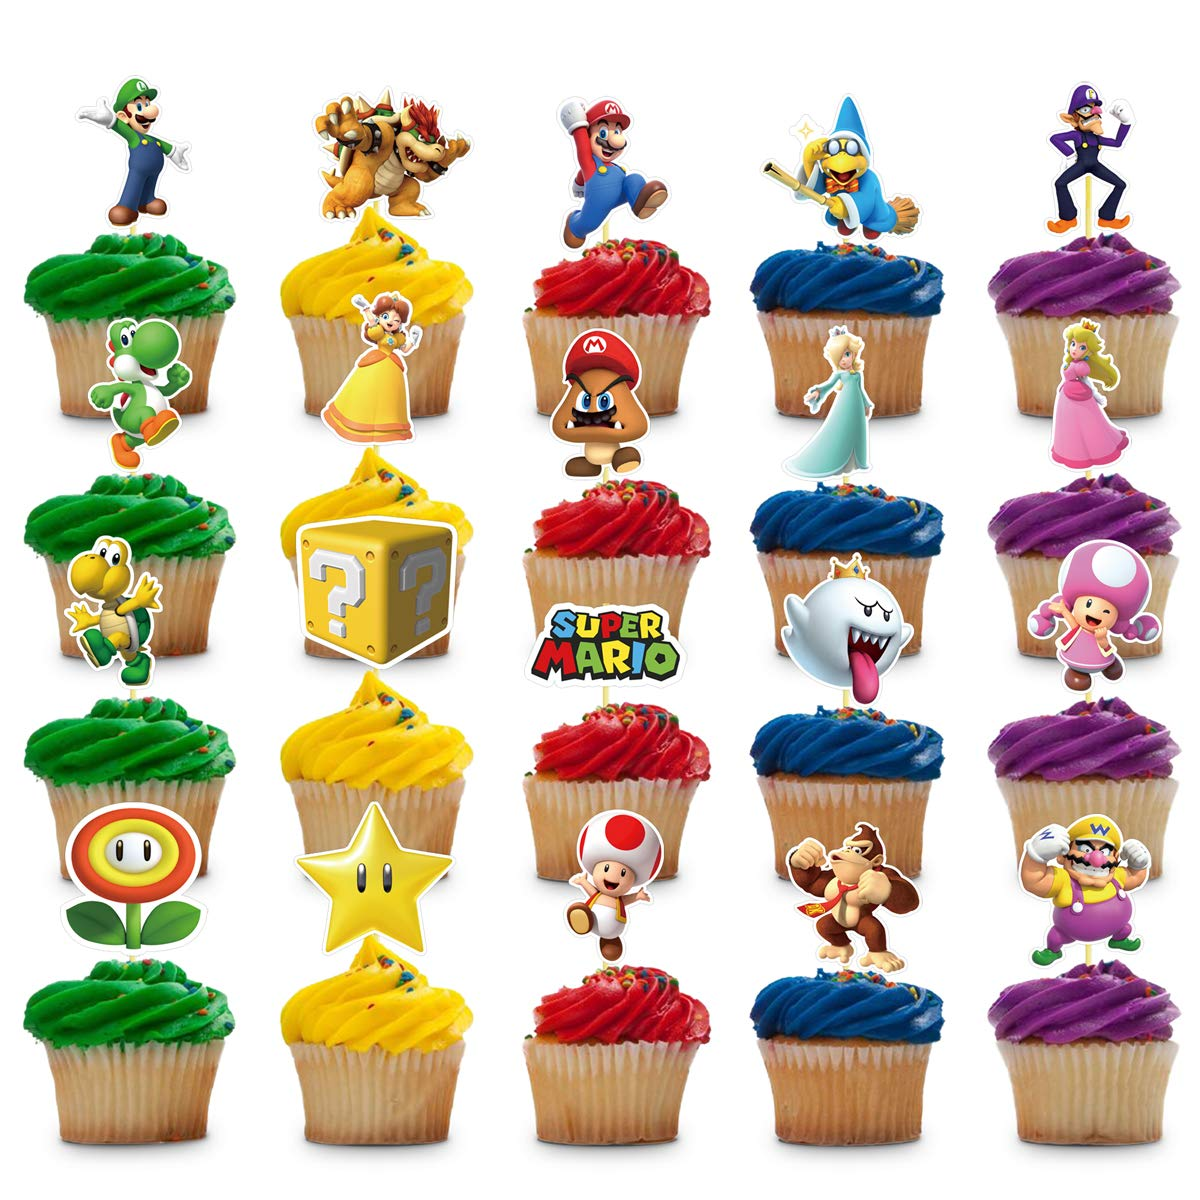 Amazon Com 40 Decorations For Super Mario Cupcake Toppers Set Birthday Cake Party Supplies Decor Toys Games